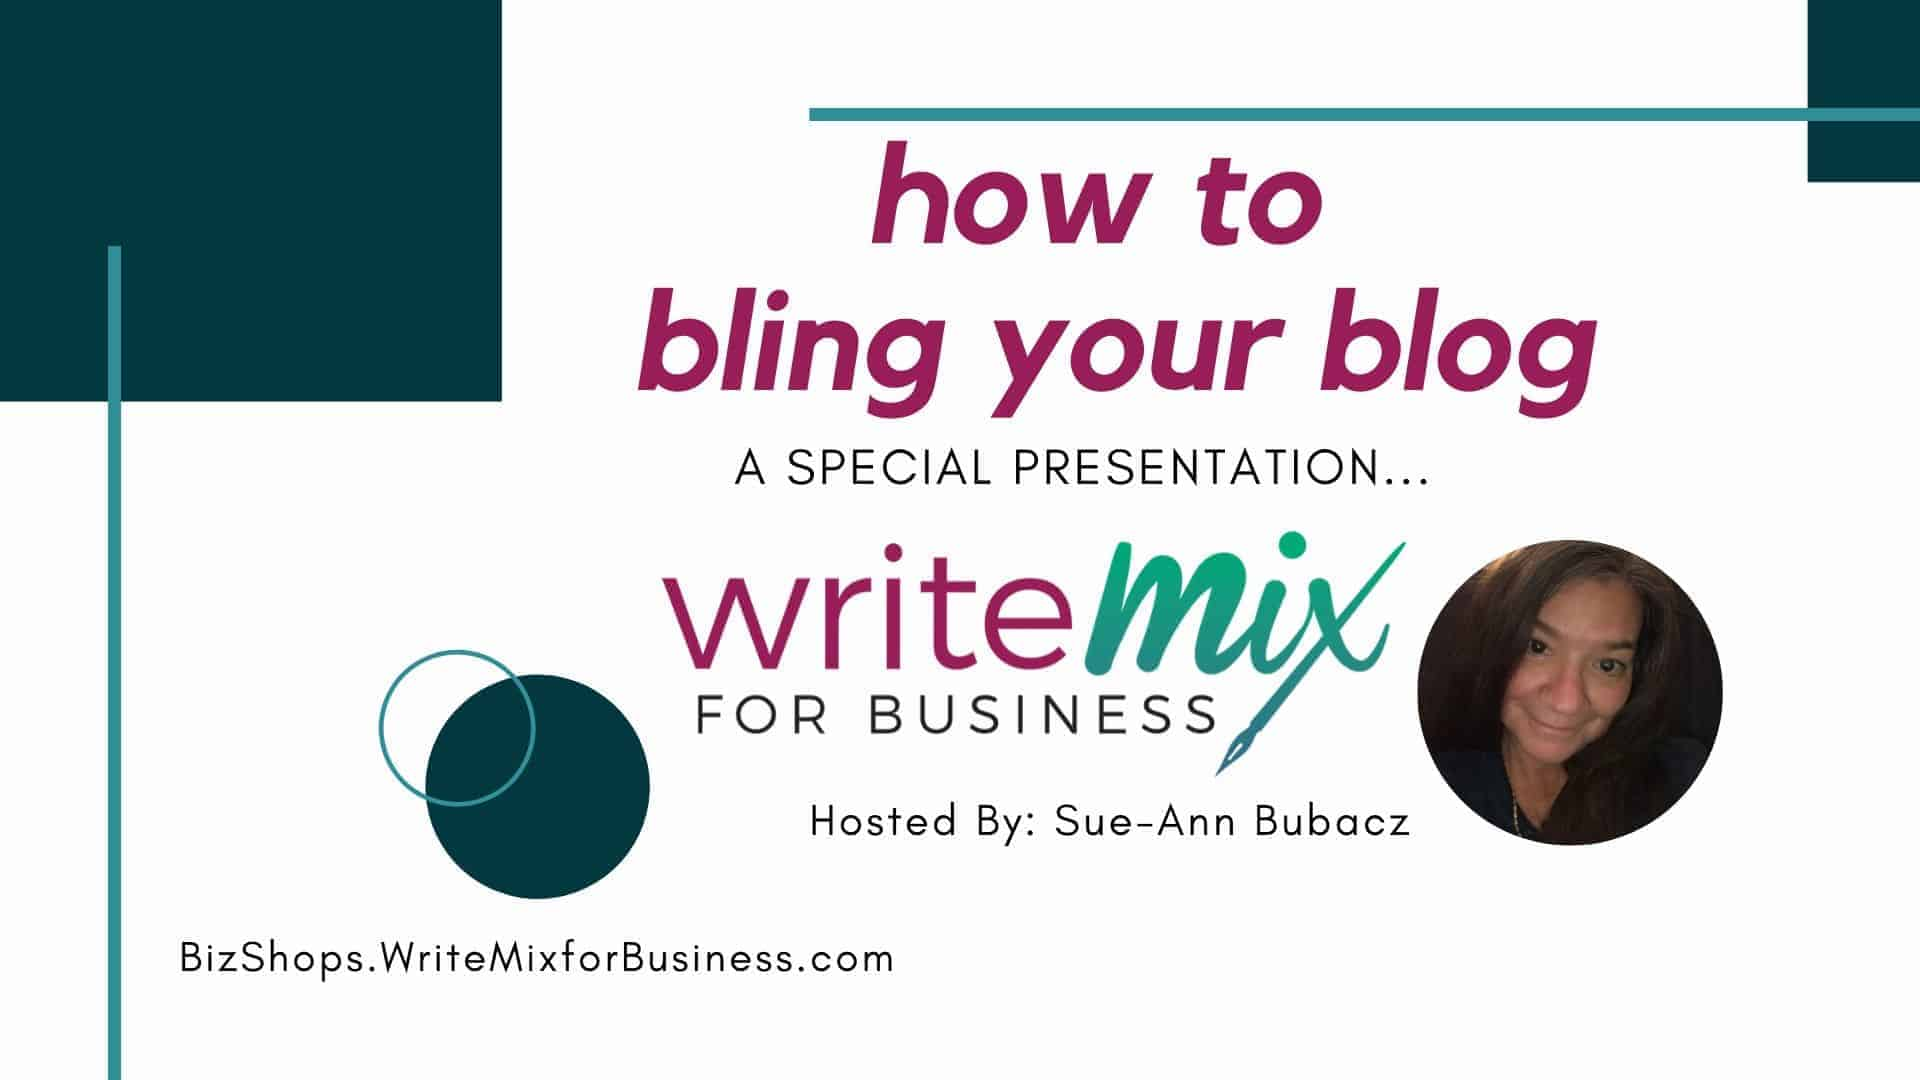 How to Bling Your Blog, part ii